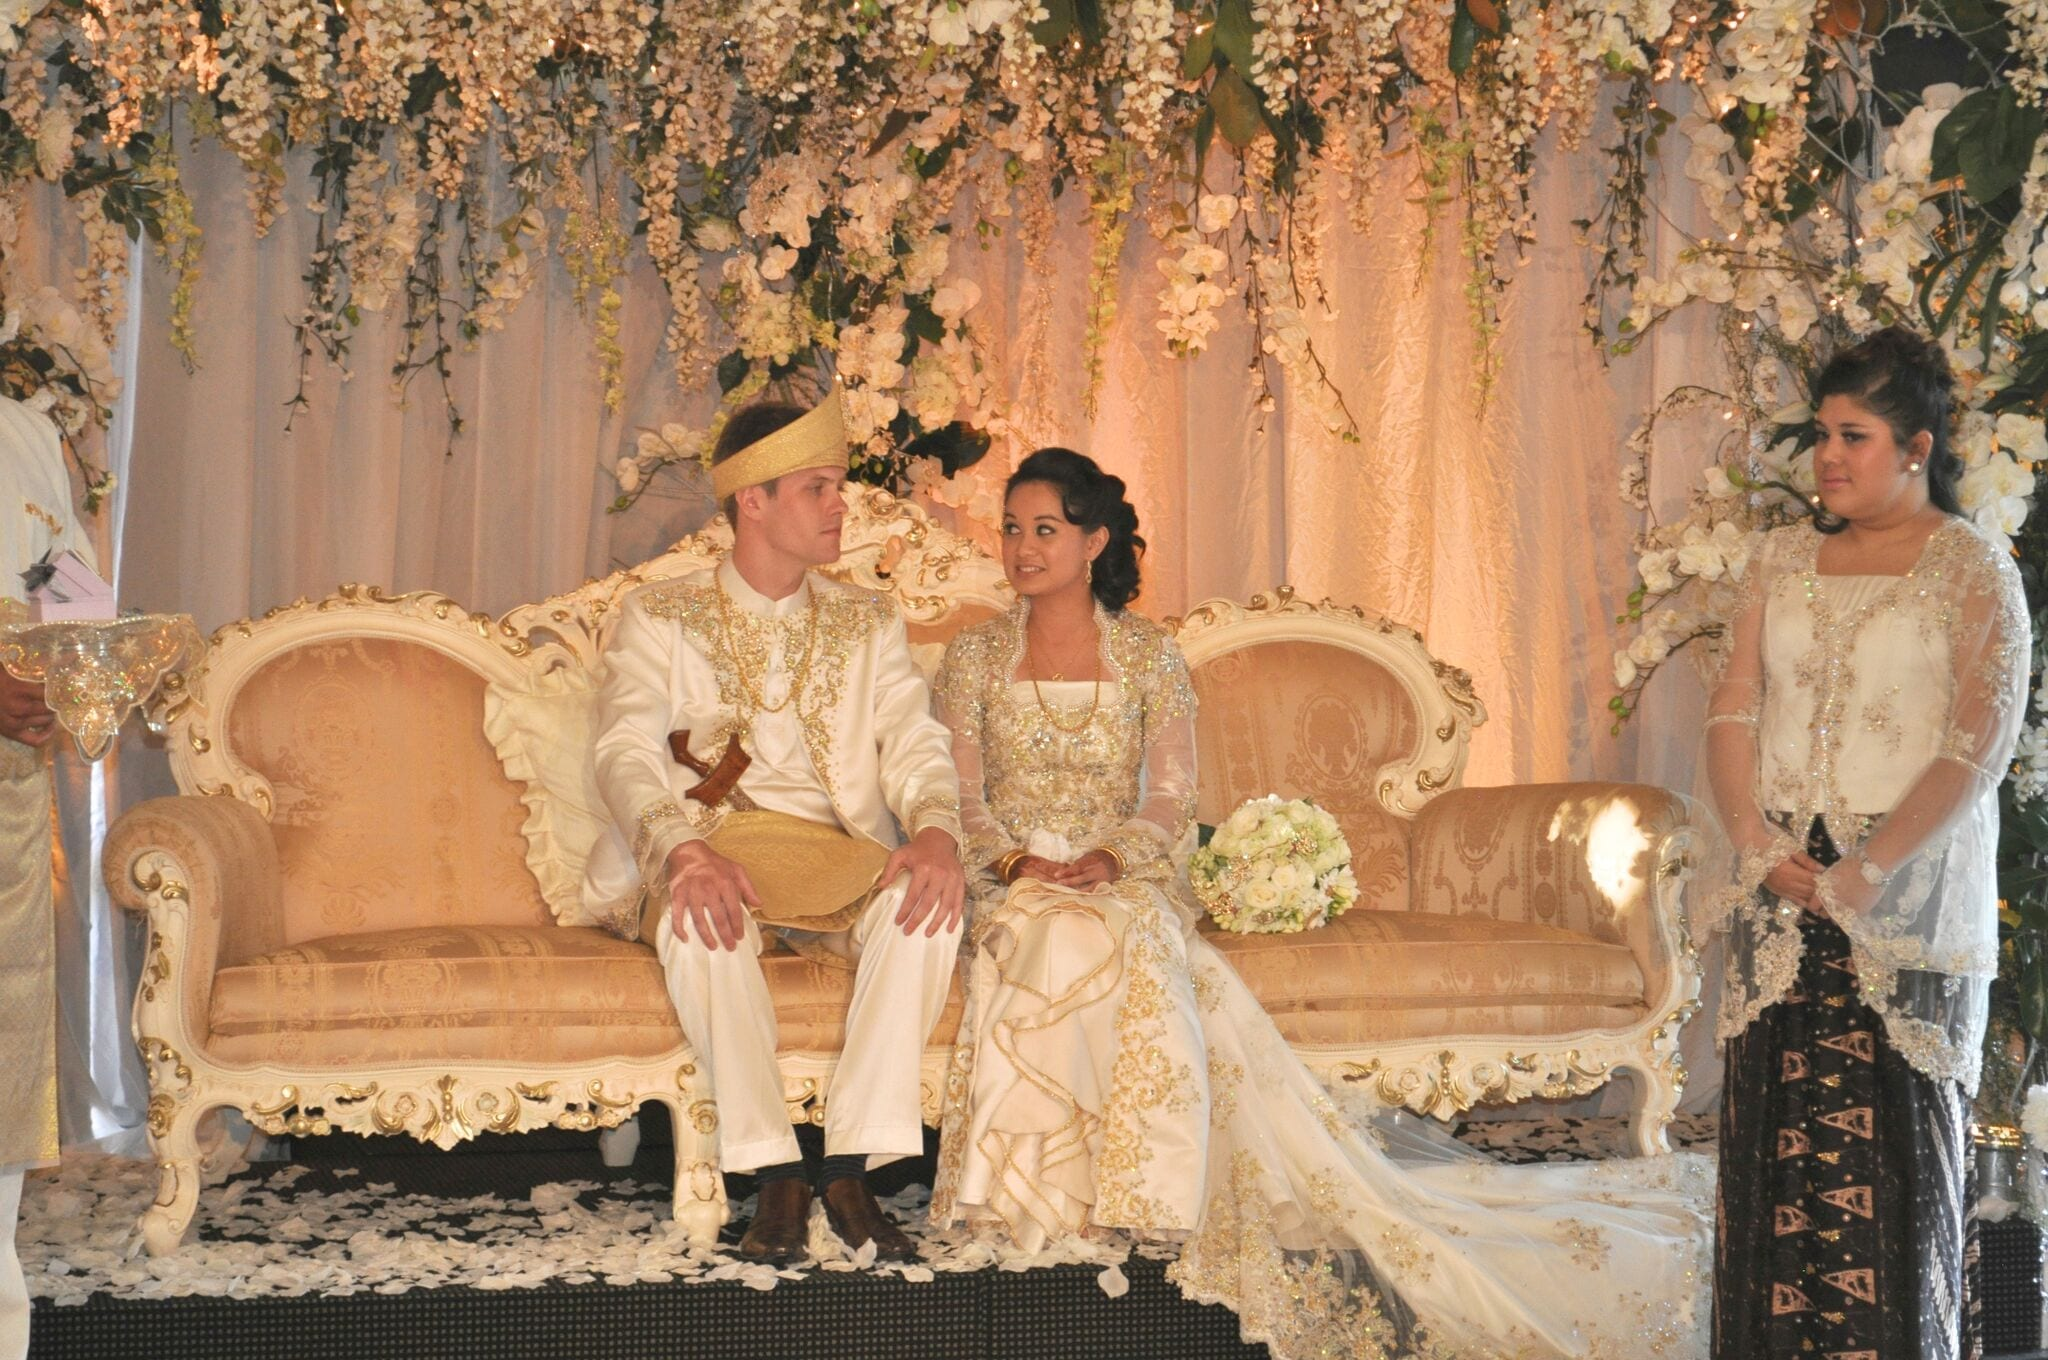 Kim Chan Events| Muslim weddings ceremony, bride and groom under floral arbour, on sofa with flowers all around and bridal bouquet of roses and freesias